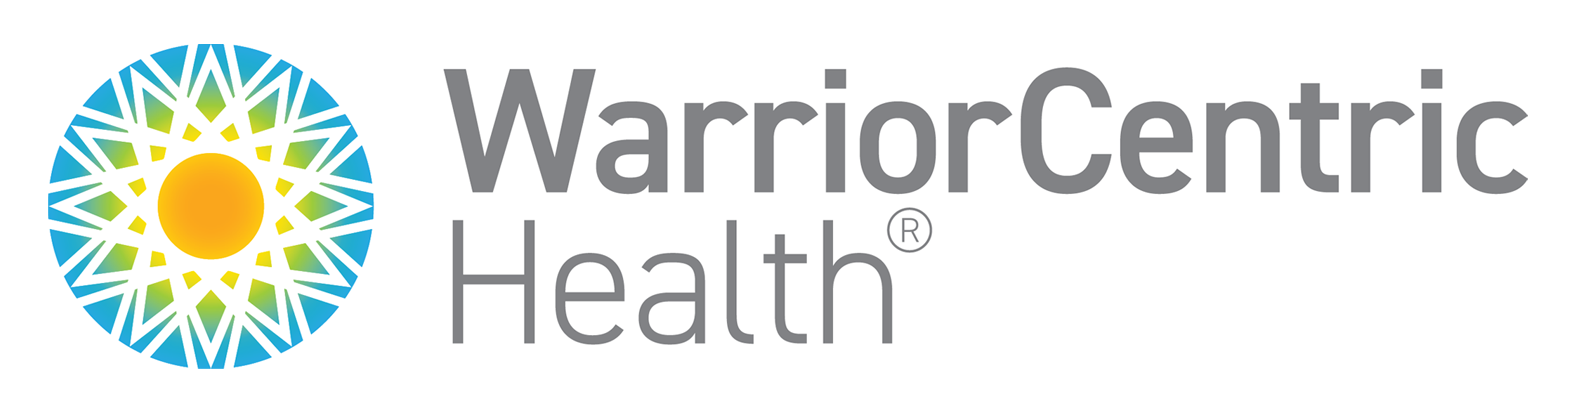 warrior centric health logo